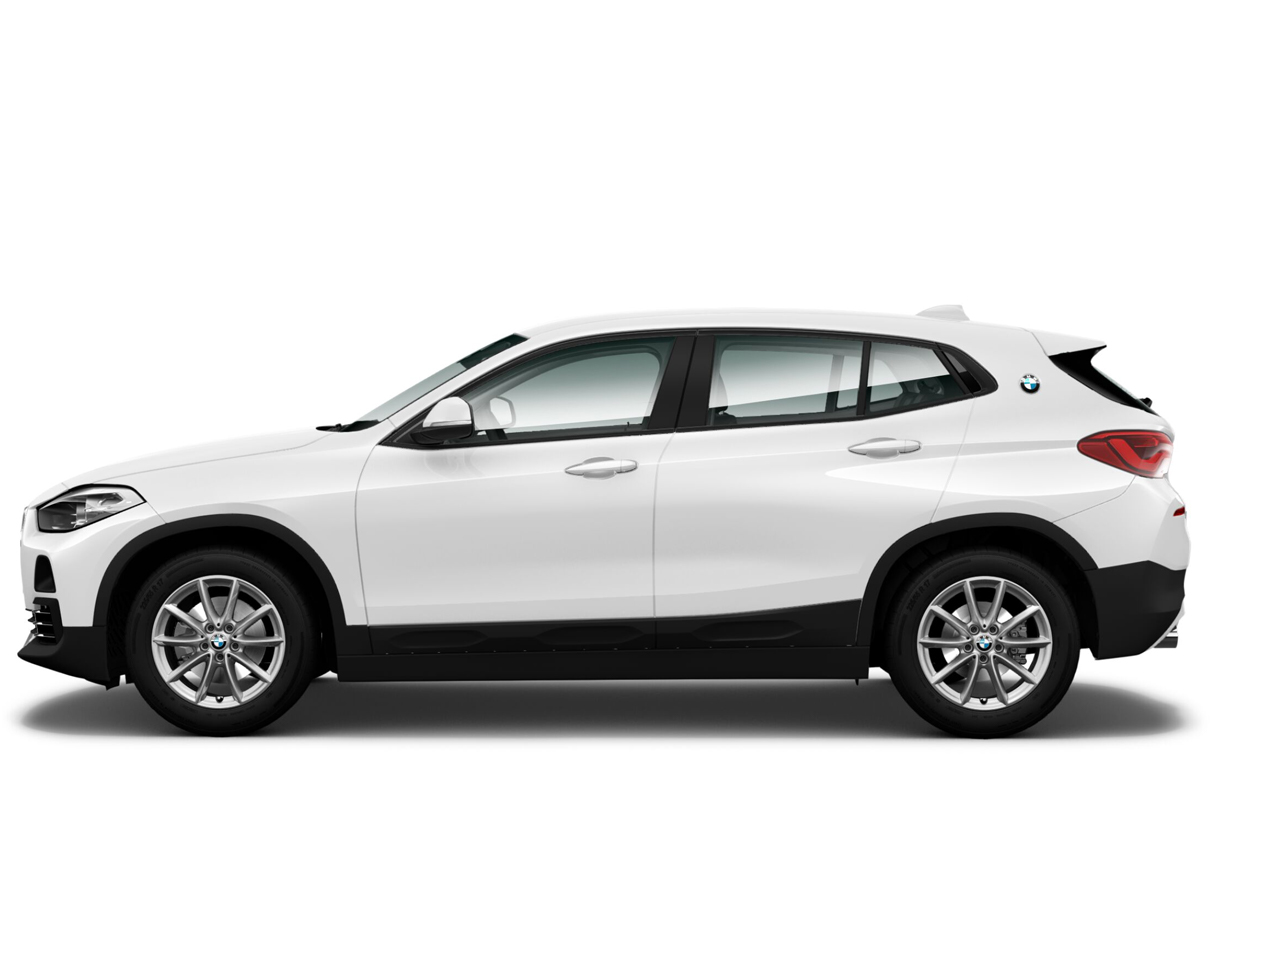 BMW X2 private lease sDrive